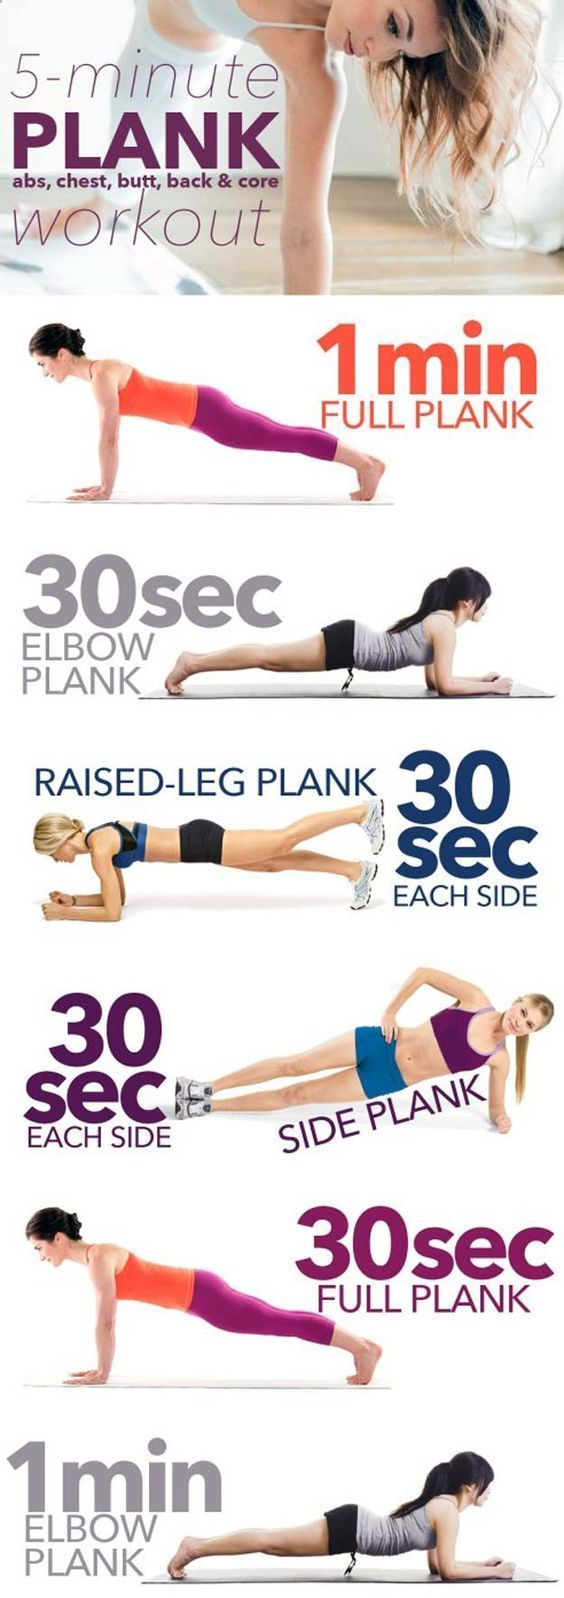 Five Minute Workouts #yoga #health #fitness #lifestyle